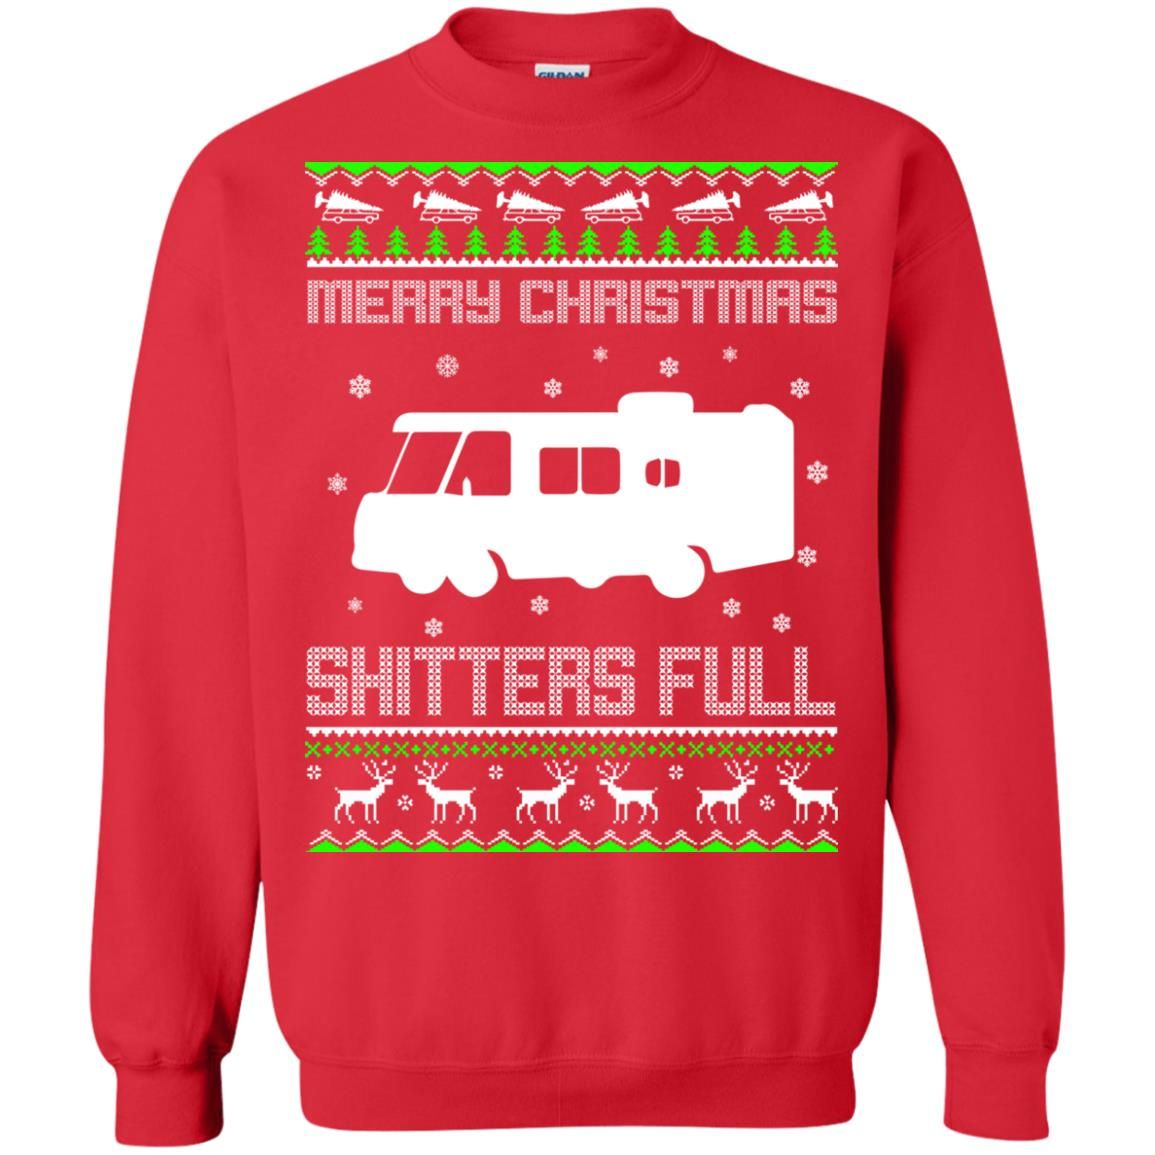 image 1573 - Christmas Vacation: Merry Christmas Shitter's full ugly sweater, hoodie